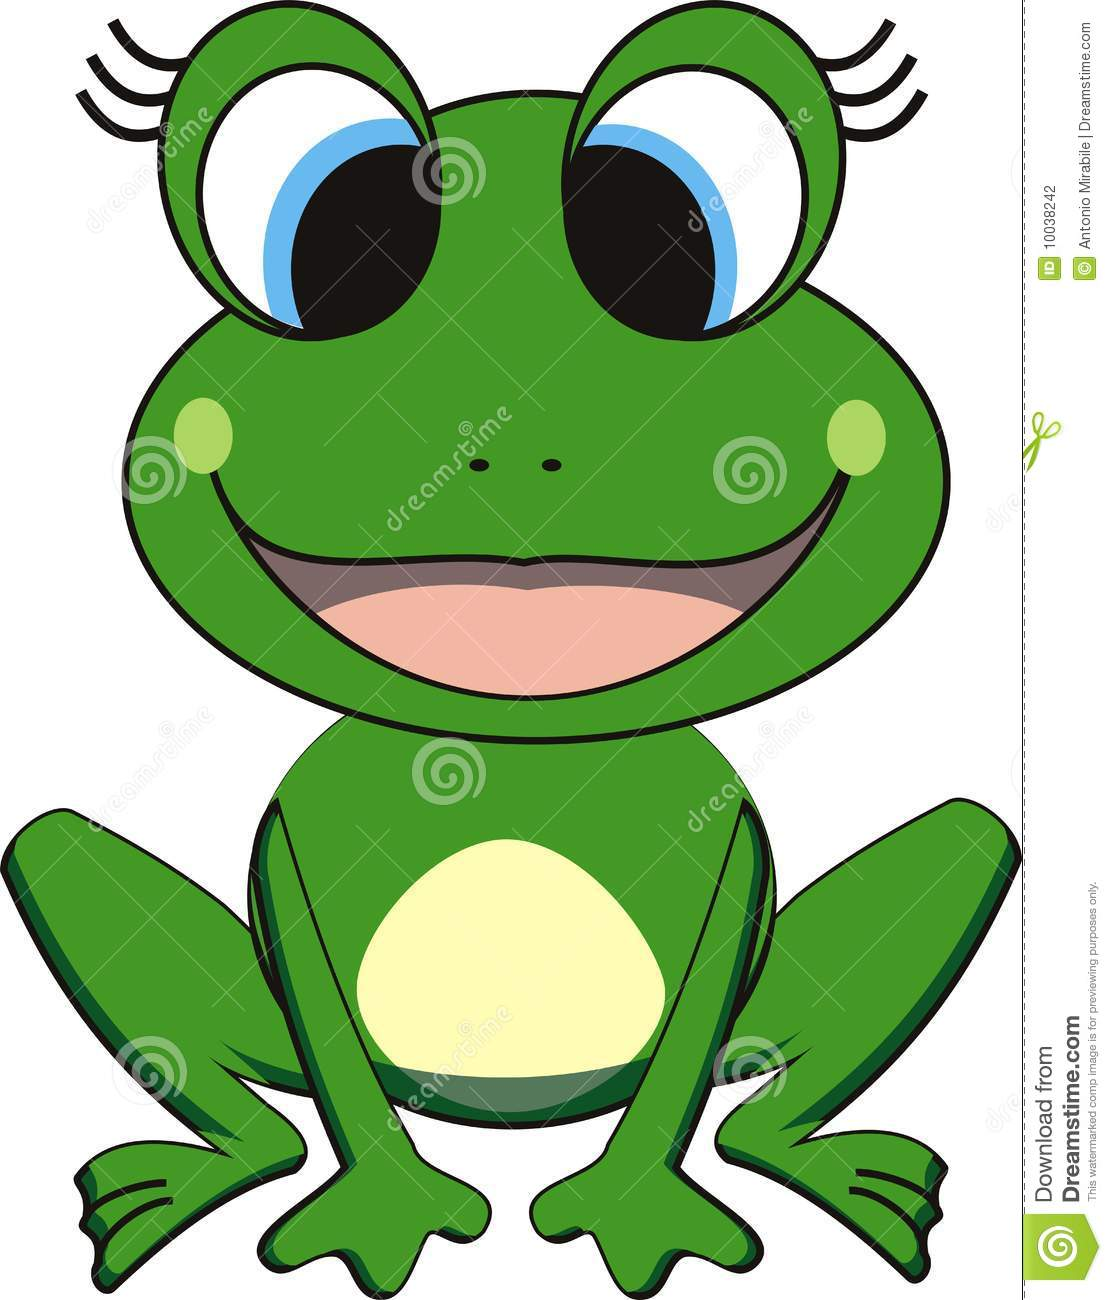 Vector illustration of happy cartoon frog. Isolated.